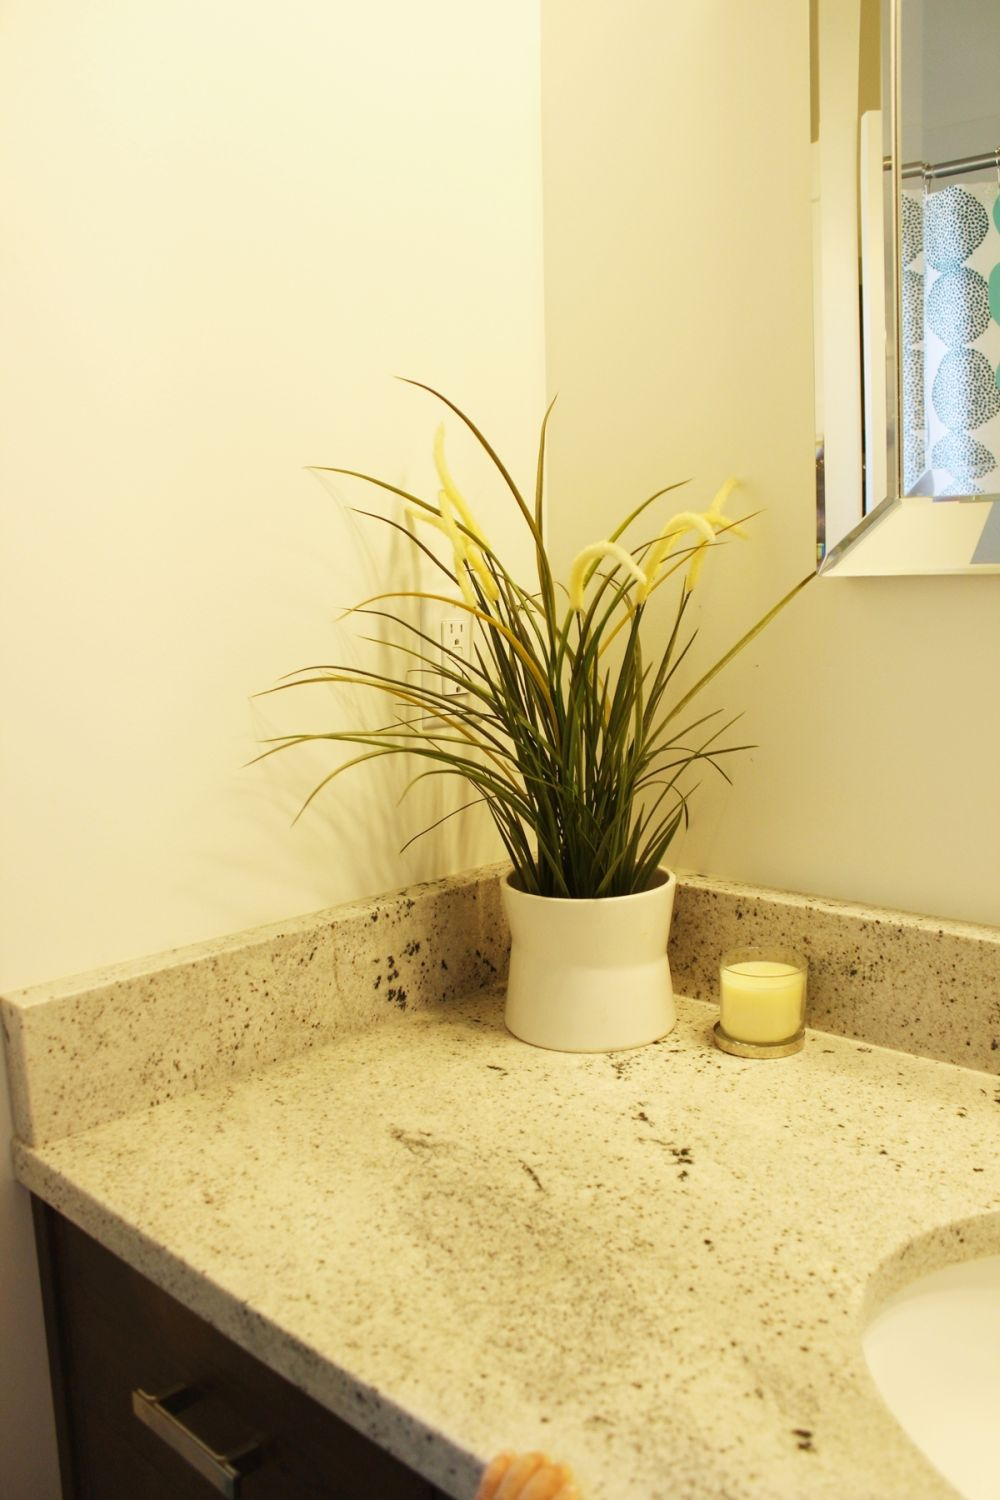 Decorating the bathroom with small plants